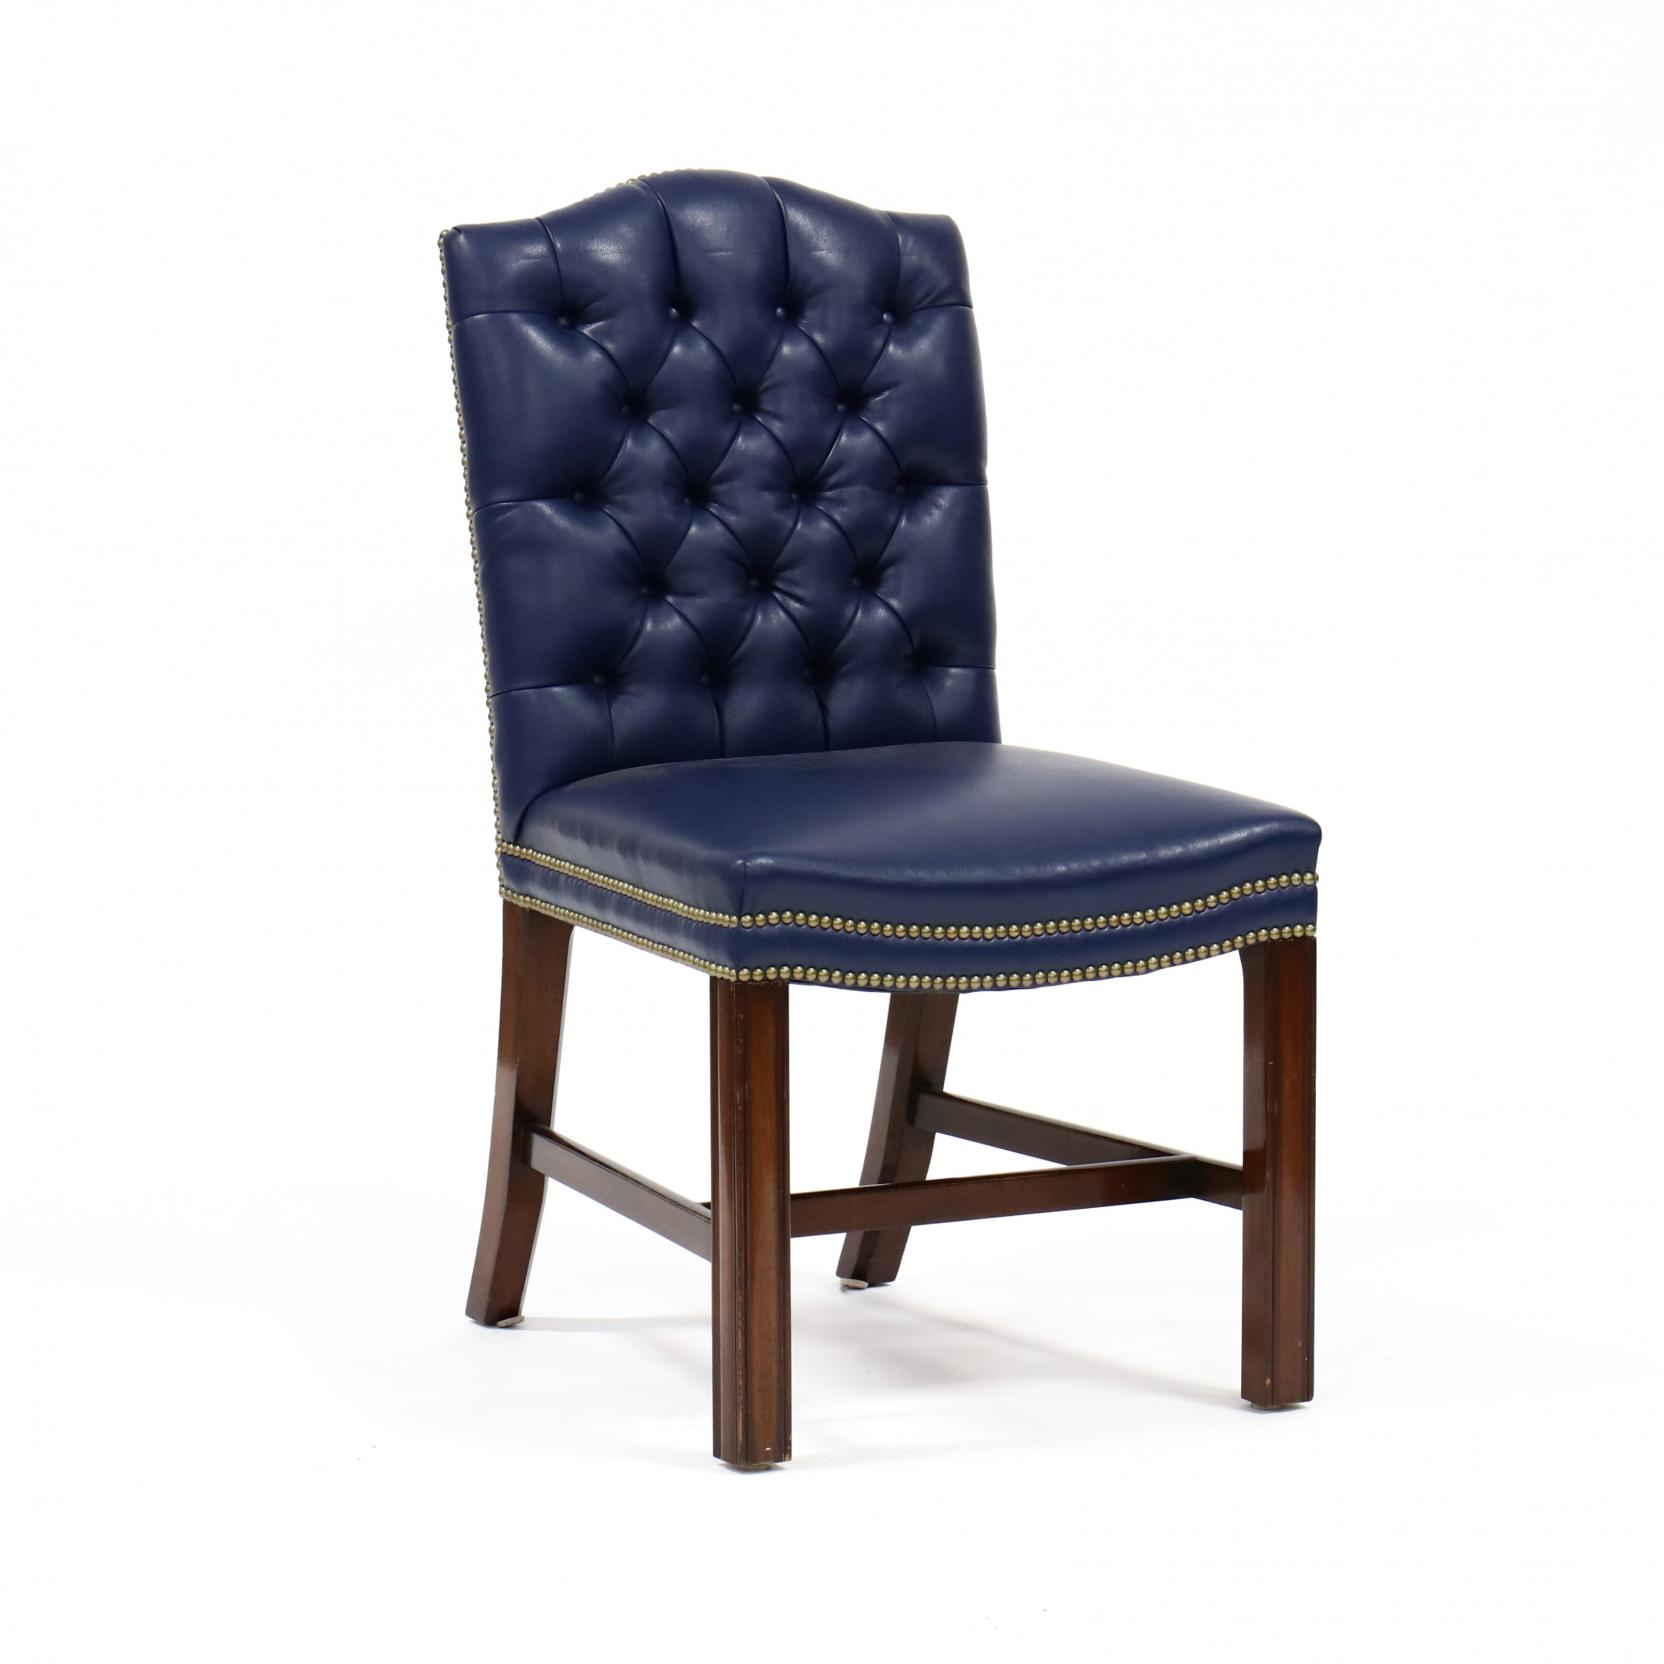 kittinger-chippendale-style-leather-upholstered-chair